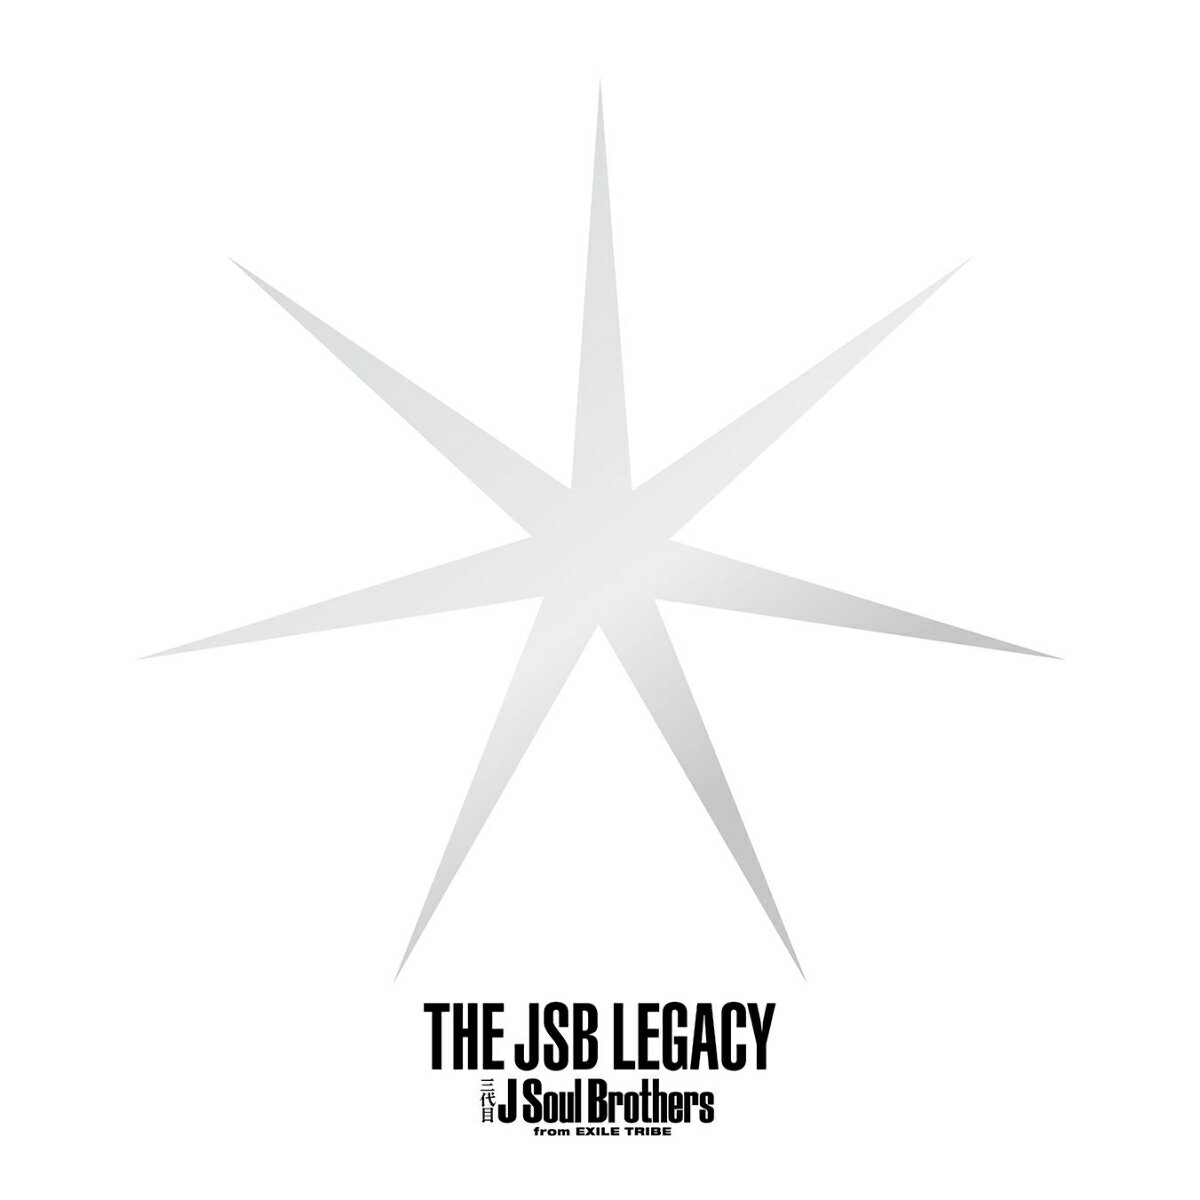 THE JSB LEGACY (初回限定盤 CD+2DVD) [ 三代目 J Soul Brothers from EXILE TRIBE ]